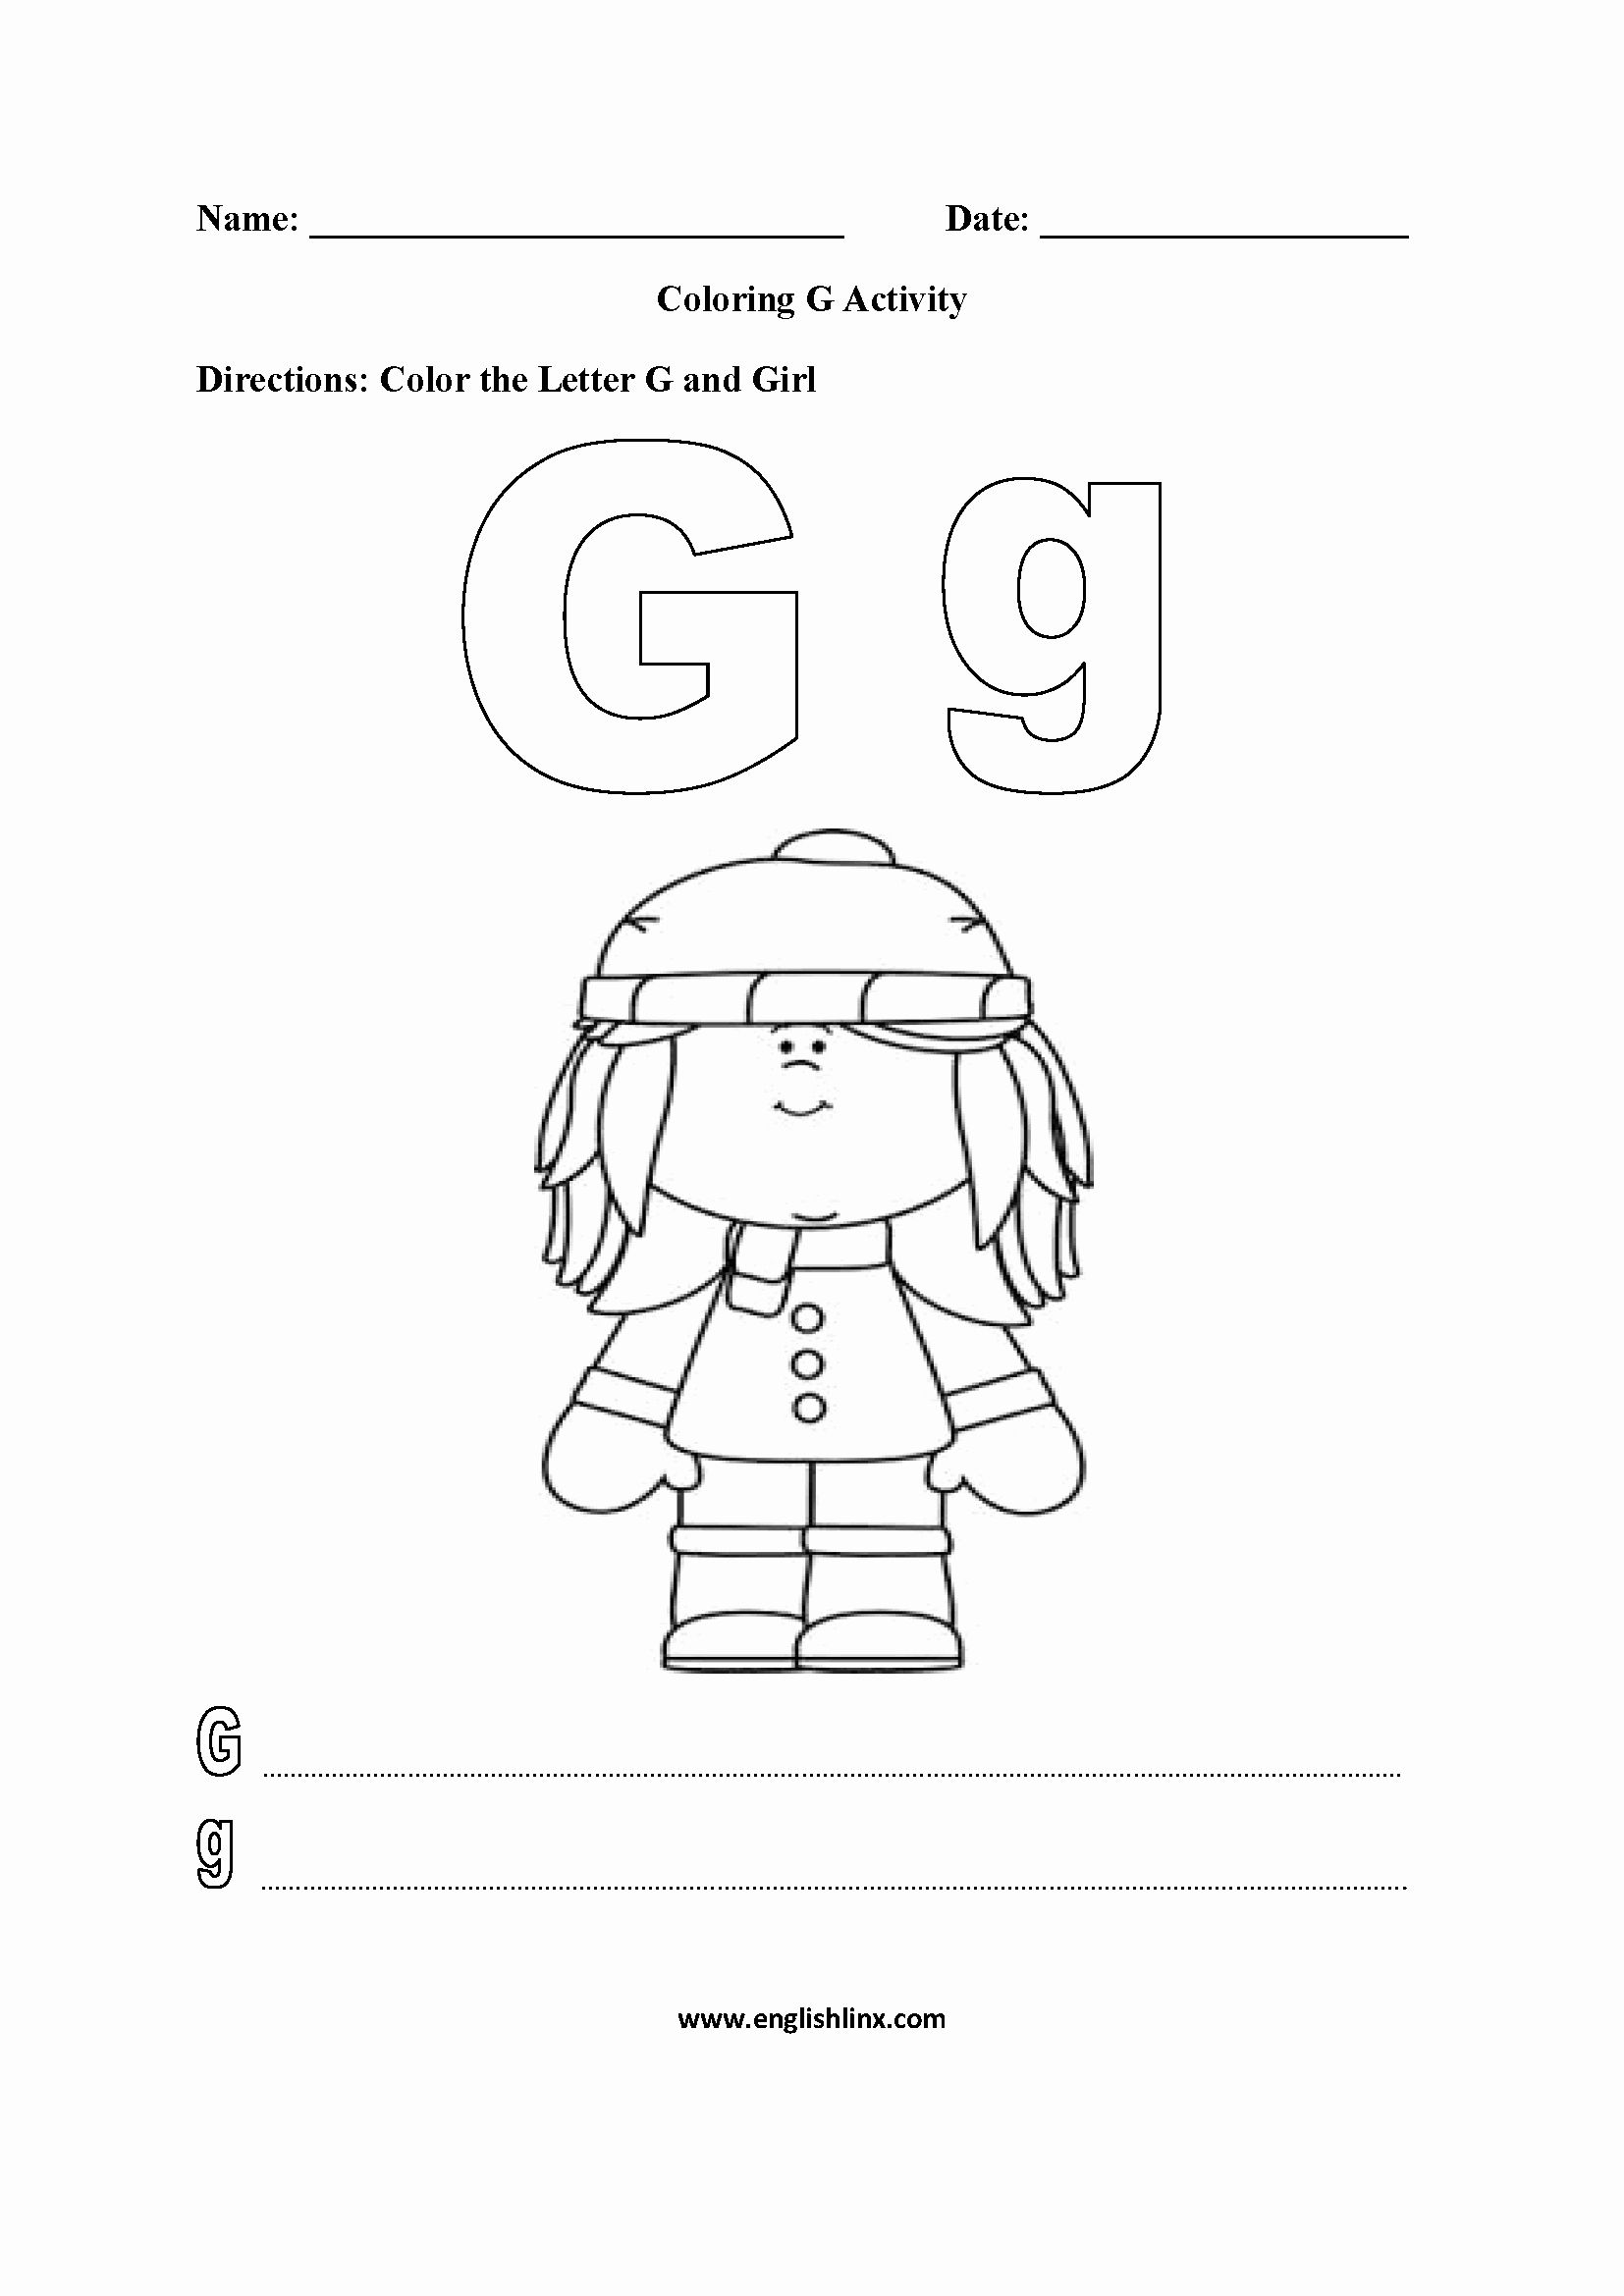 Colouring Alphabet Exercises Pdf  Coloring Pages Gallery in 10